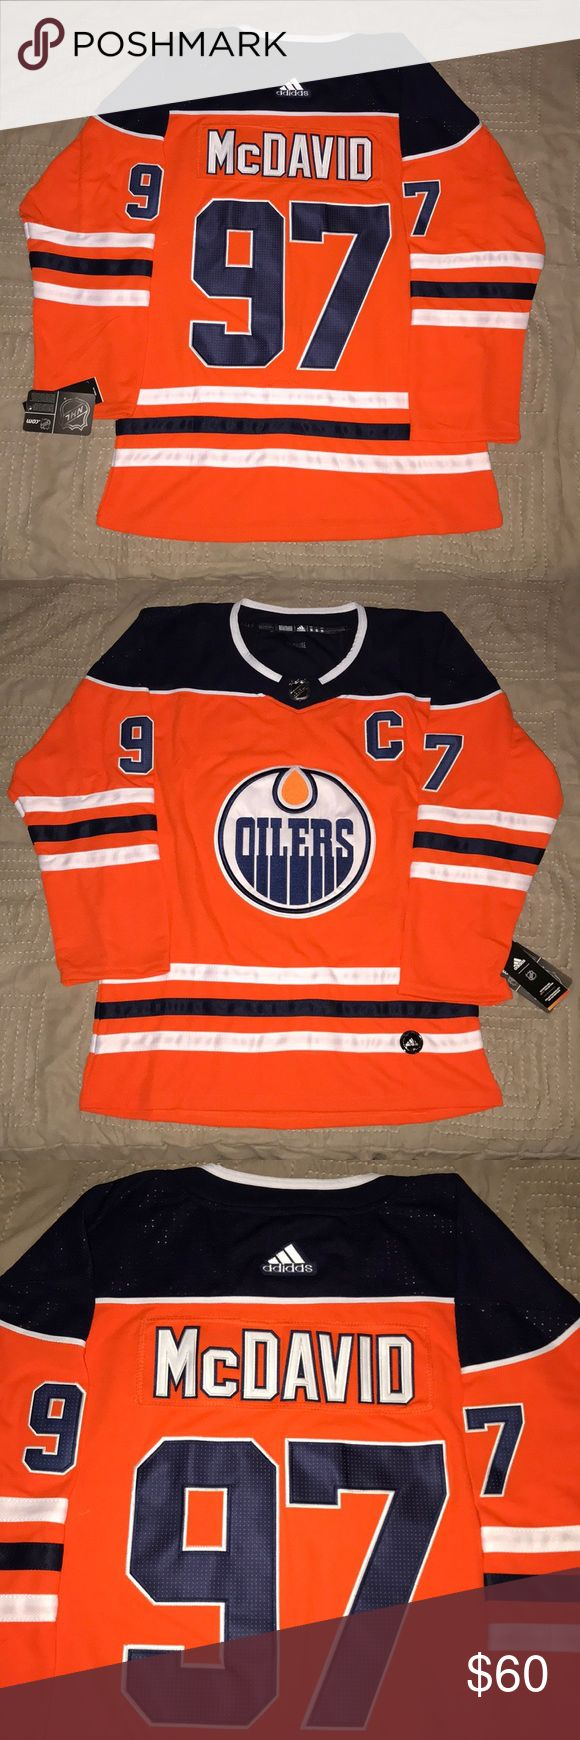 Connor McDavid Edmonton Oilers Adidas Jersey Brand New with Tags! Connor McDavid Edmonton Oilers Adidas Jersey! On ice 2018 Orange Crush Jersey! 100% stitched and embroidered! No marks or blemishes adidas Sweaters V-Neck